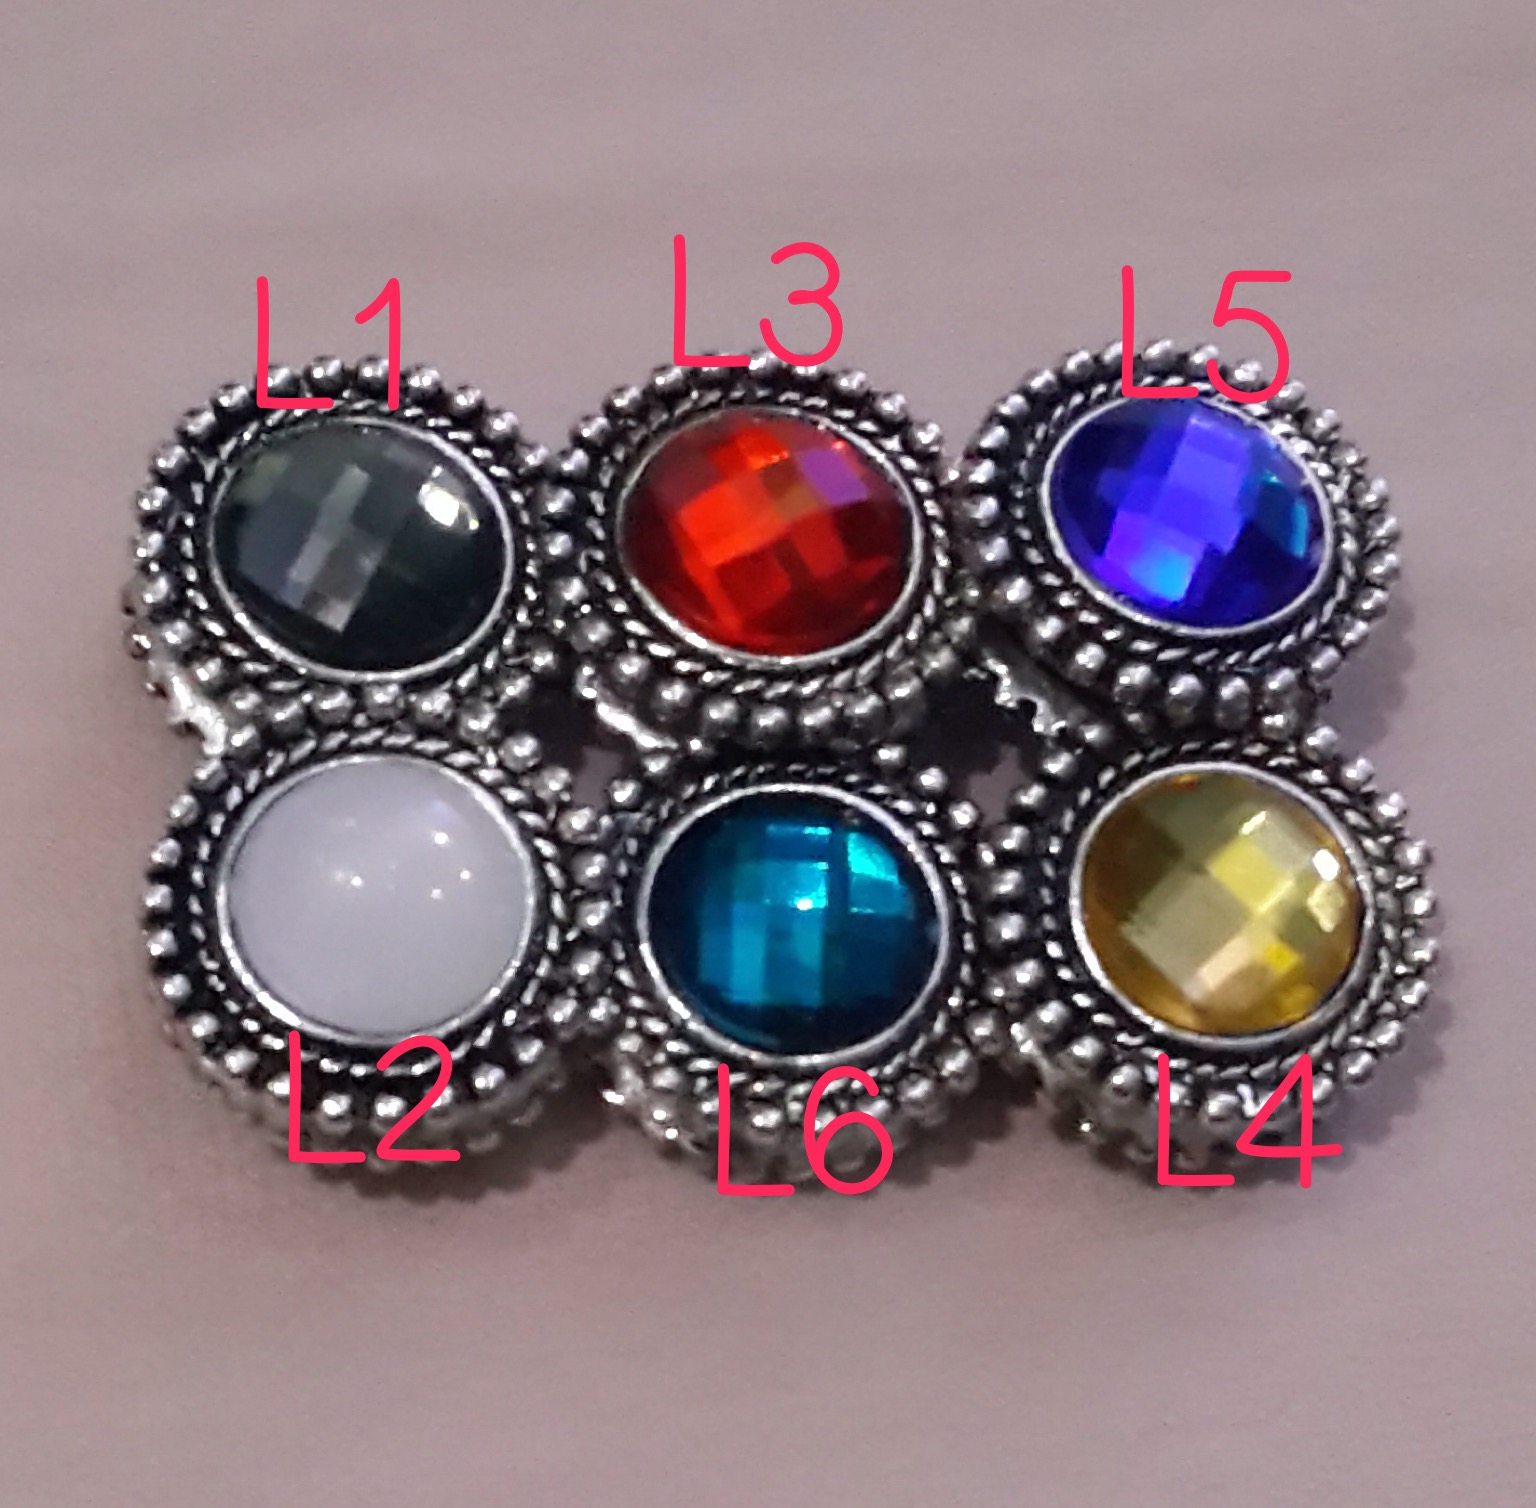 Bross pin magnet hijab jilbab colour